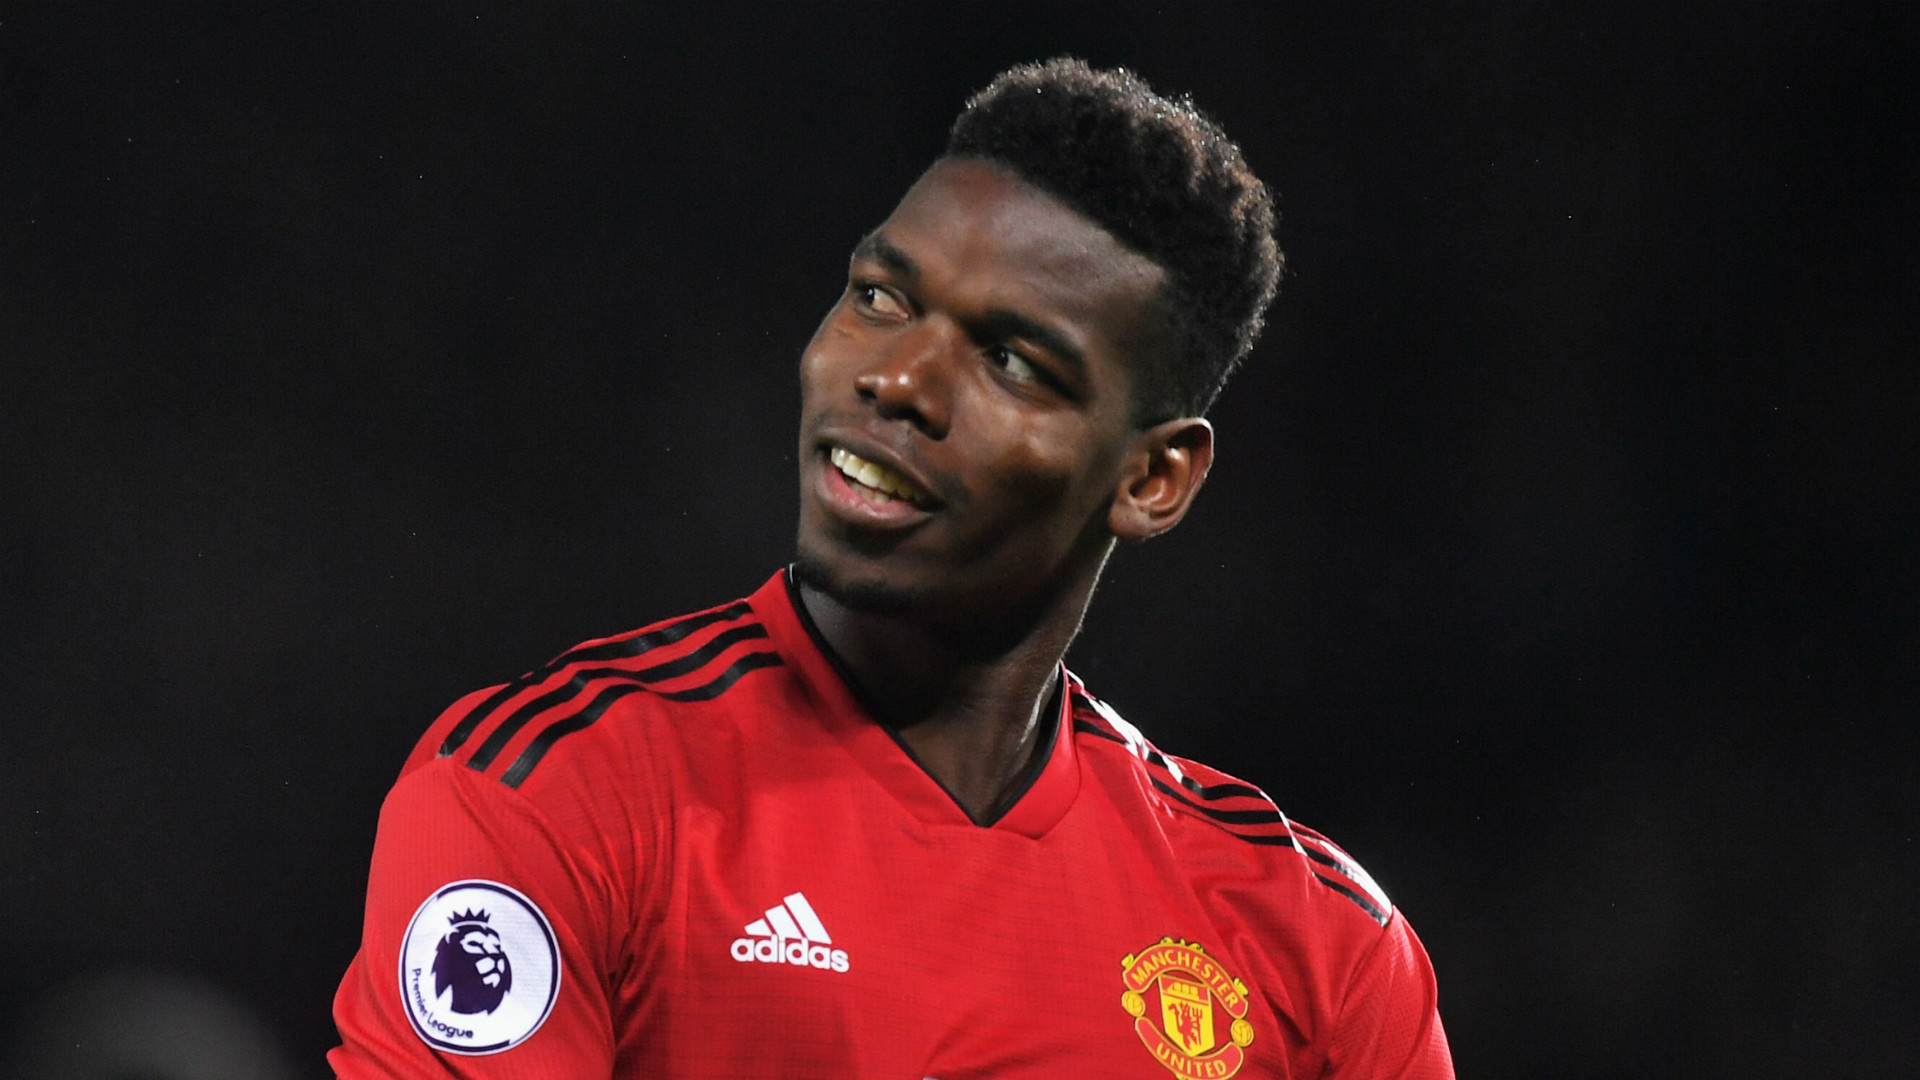 Paul Pogba: Paul Pogba News: 'Pogba Celebrations Disrespectful